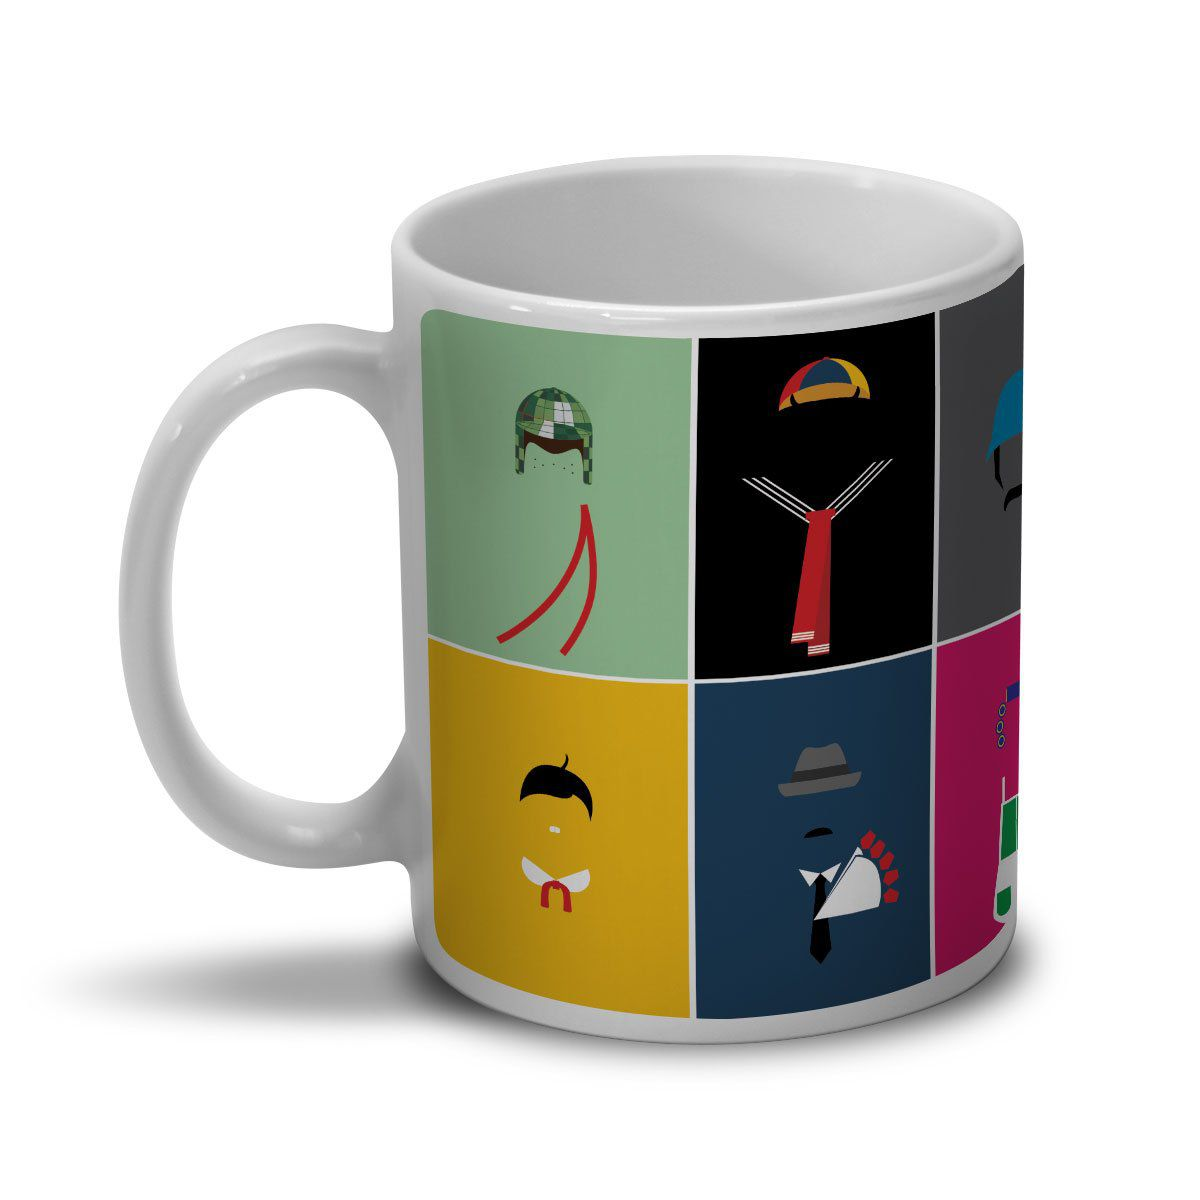 Caneca Chaves Ícones Vintage  - bandUP Store Marketplace